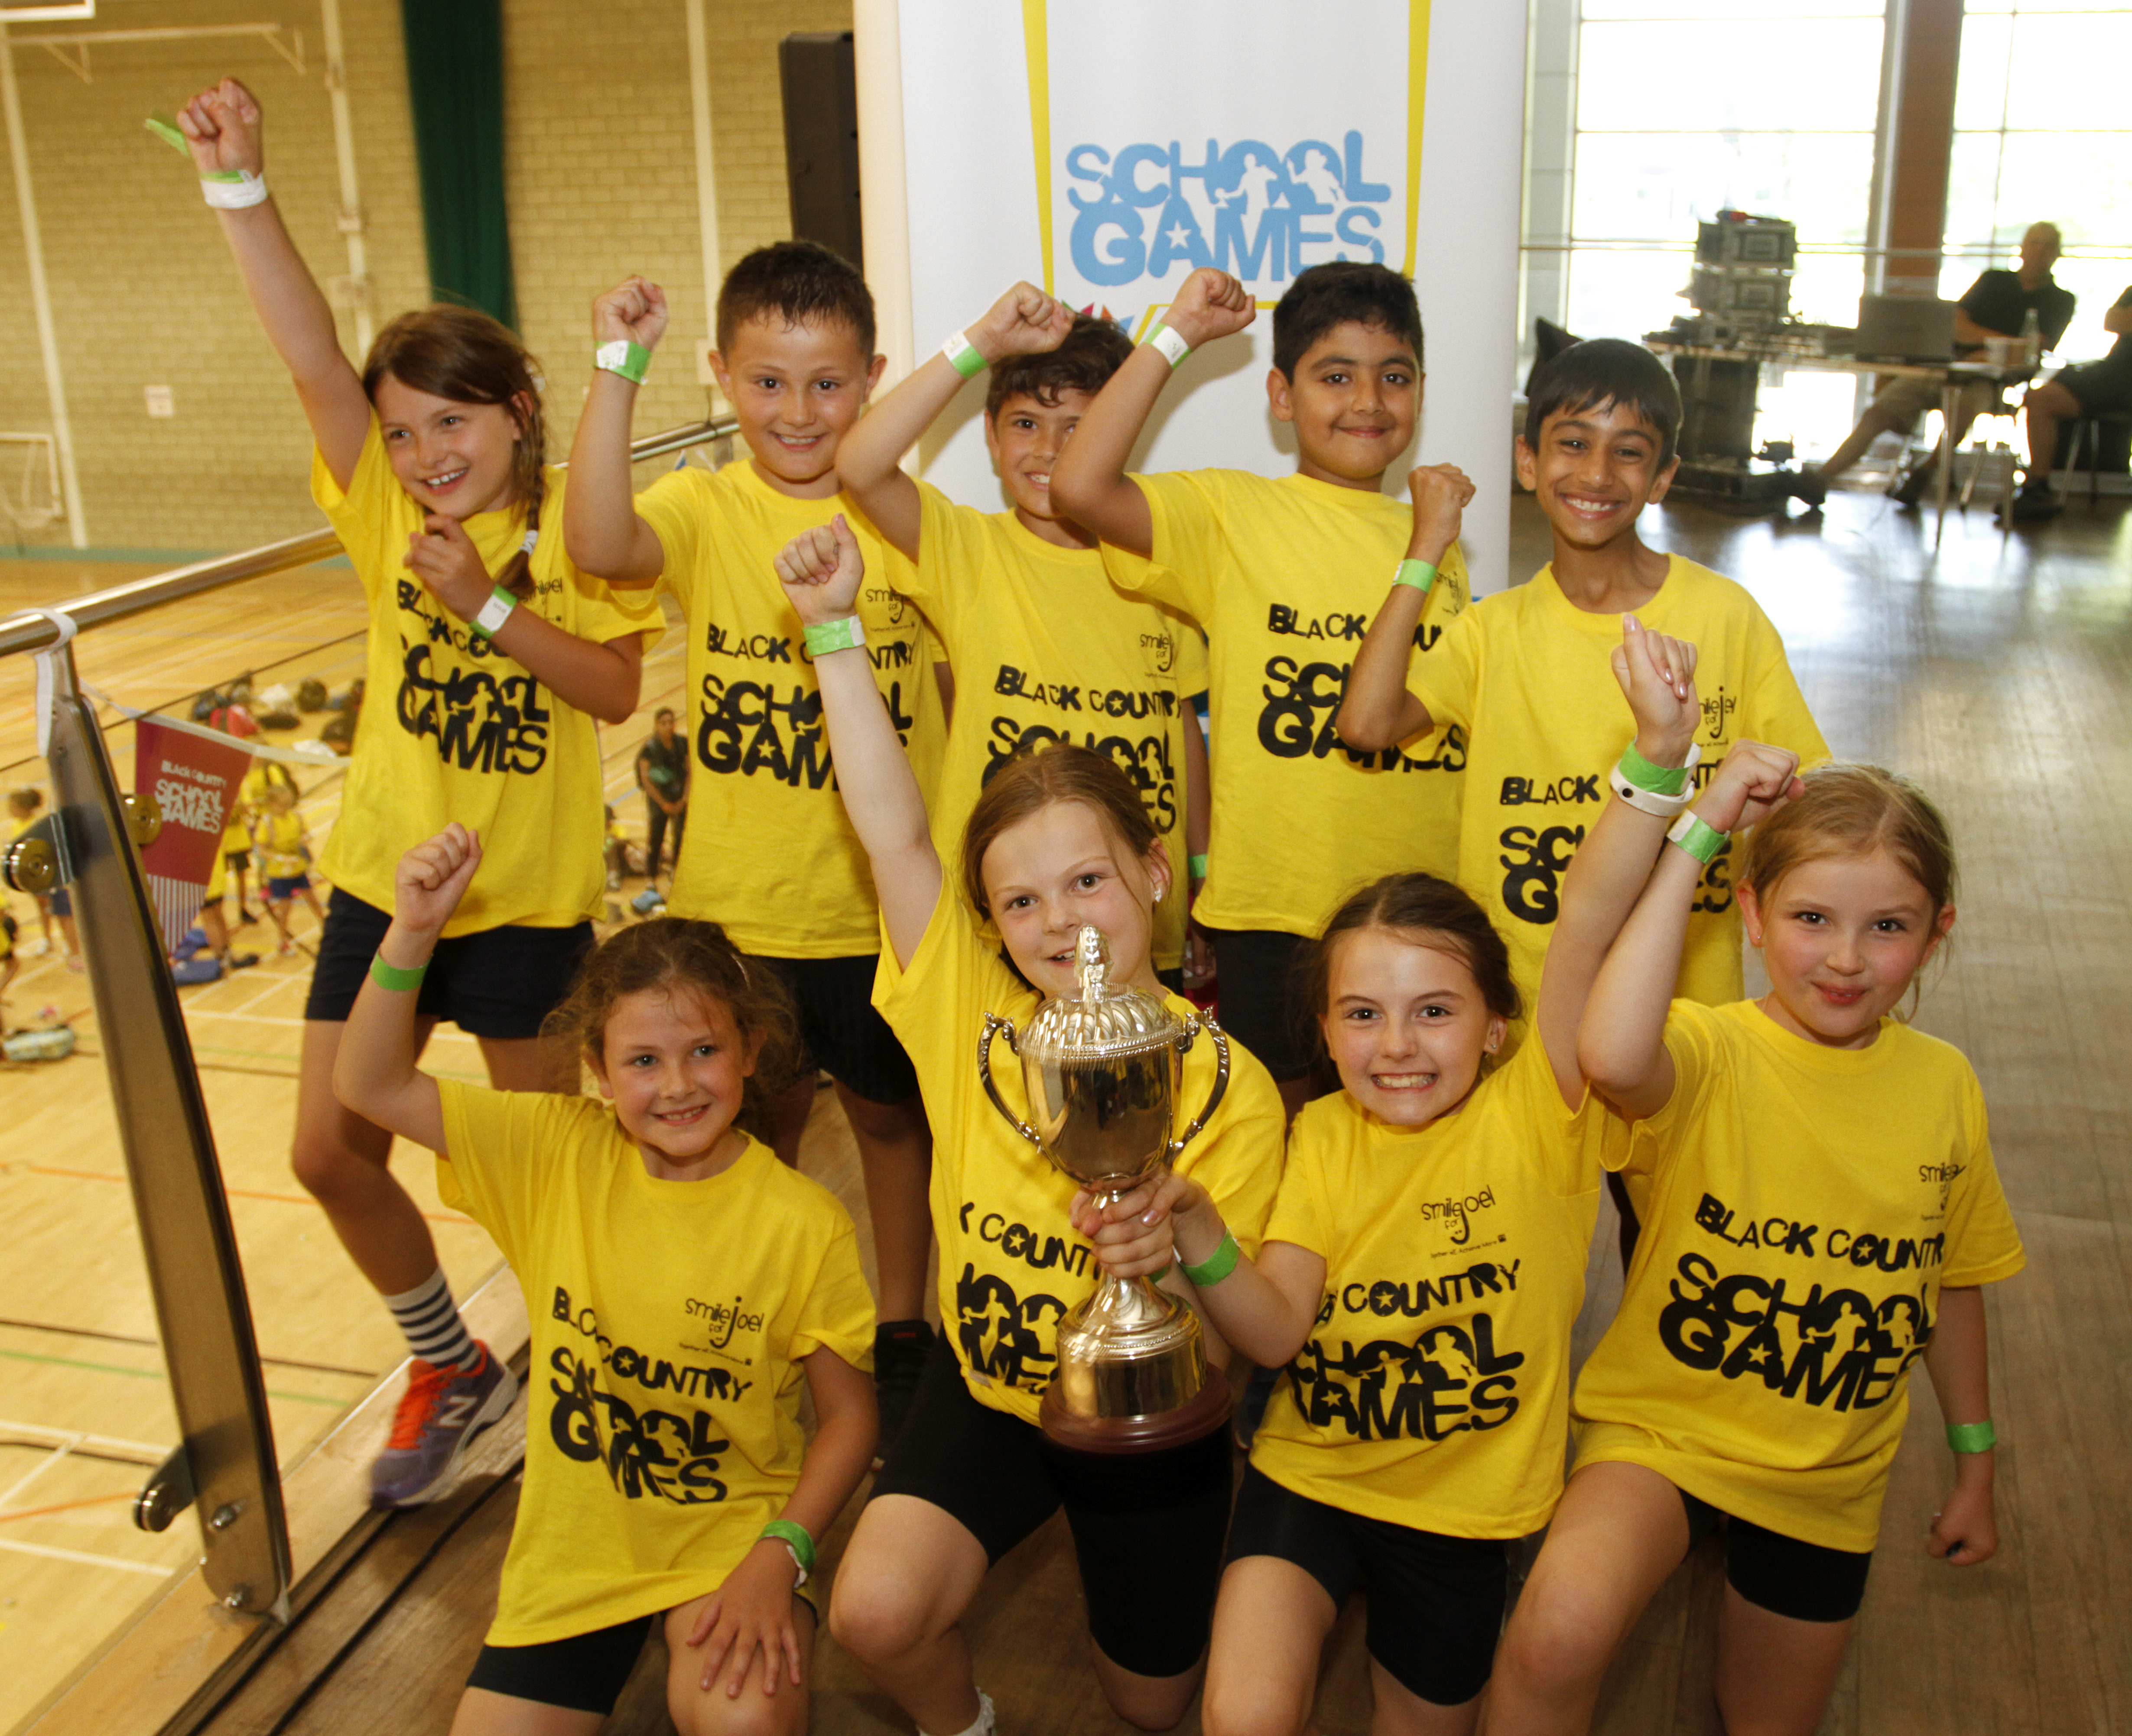 Wolverhampton win the Black Country School Games Summer Festival for the 2nd year in a Row